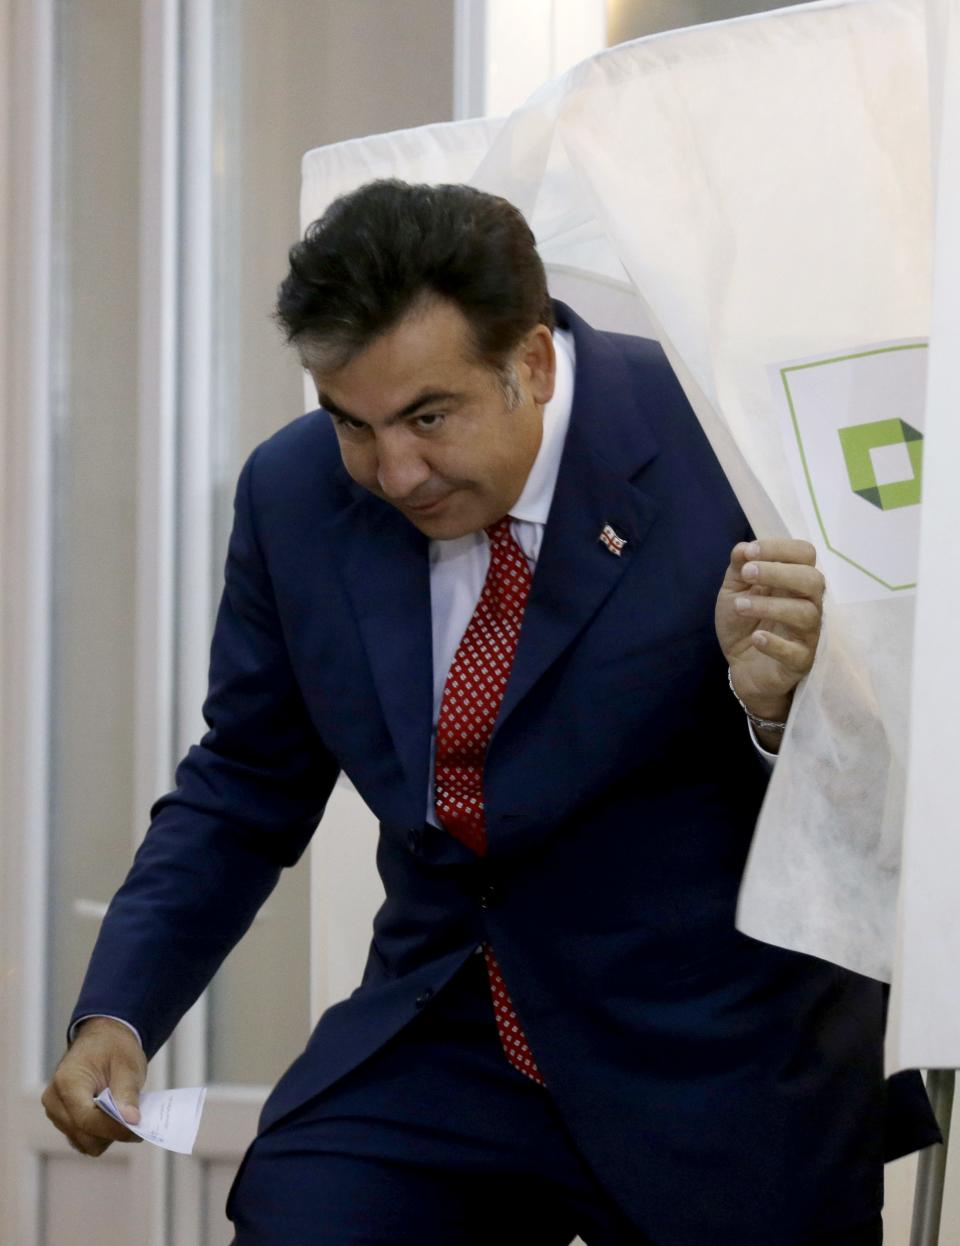 Georgian President Mikhail Saakashvili leaves a voting booth at a polling station in Tbilisi, Georgia, Monday, Oct. 1, 2012. Voters in Georgia are choosing a new parliament in a heated election Monday that will decide the future of Saakashvili's government. (AP Photo/Efrem Lukatsky)